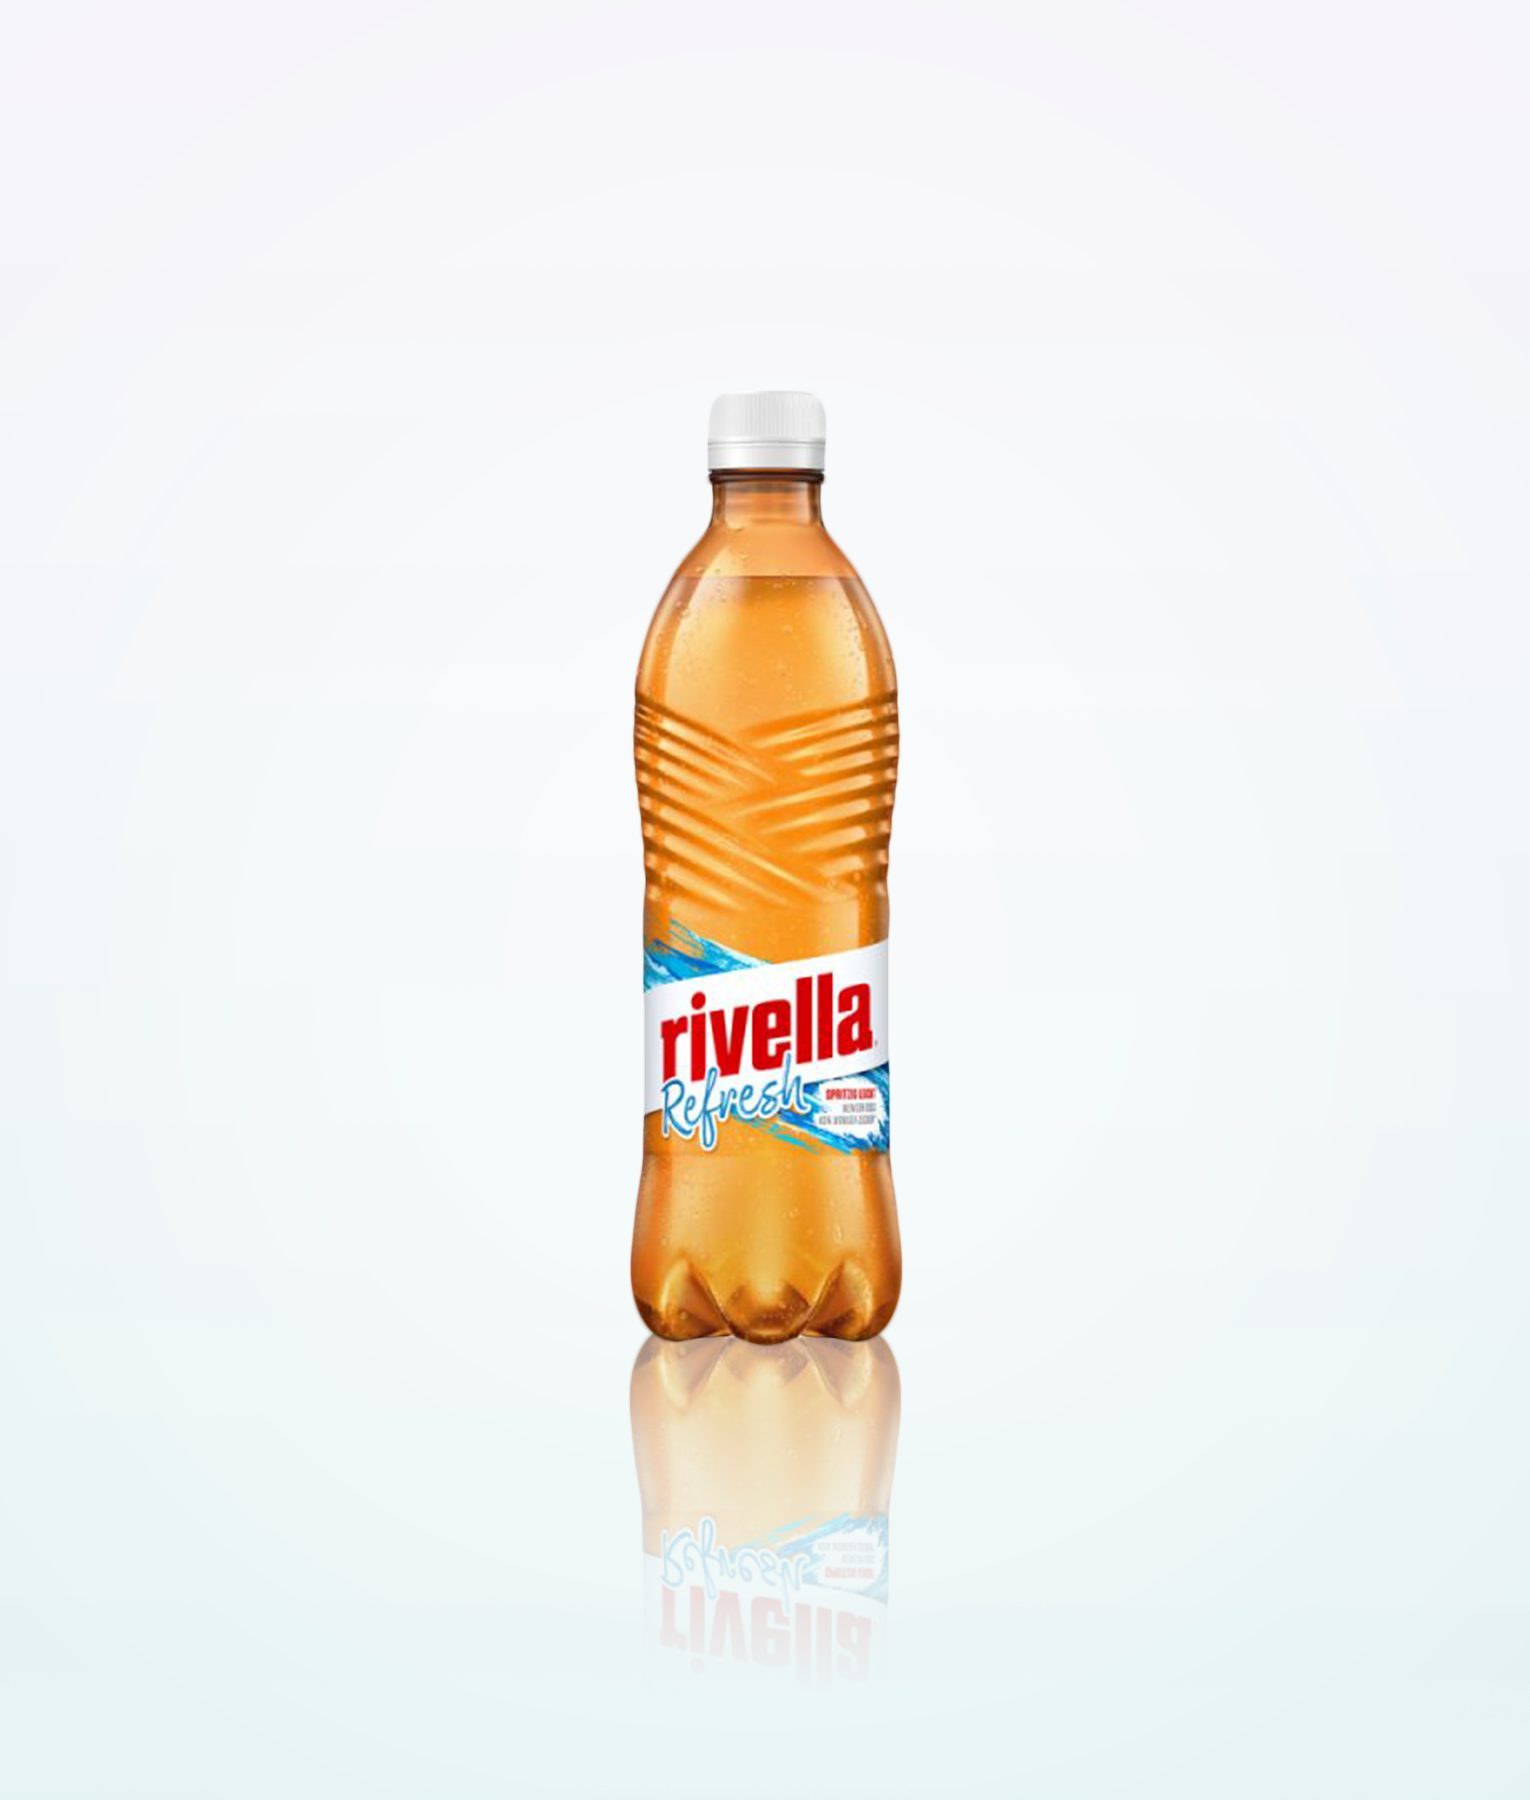 rivella-refresh-500ml